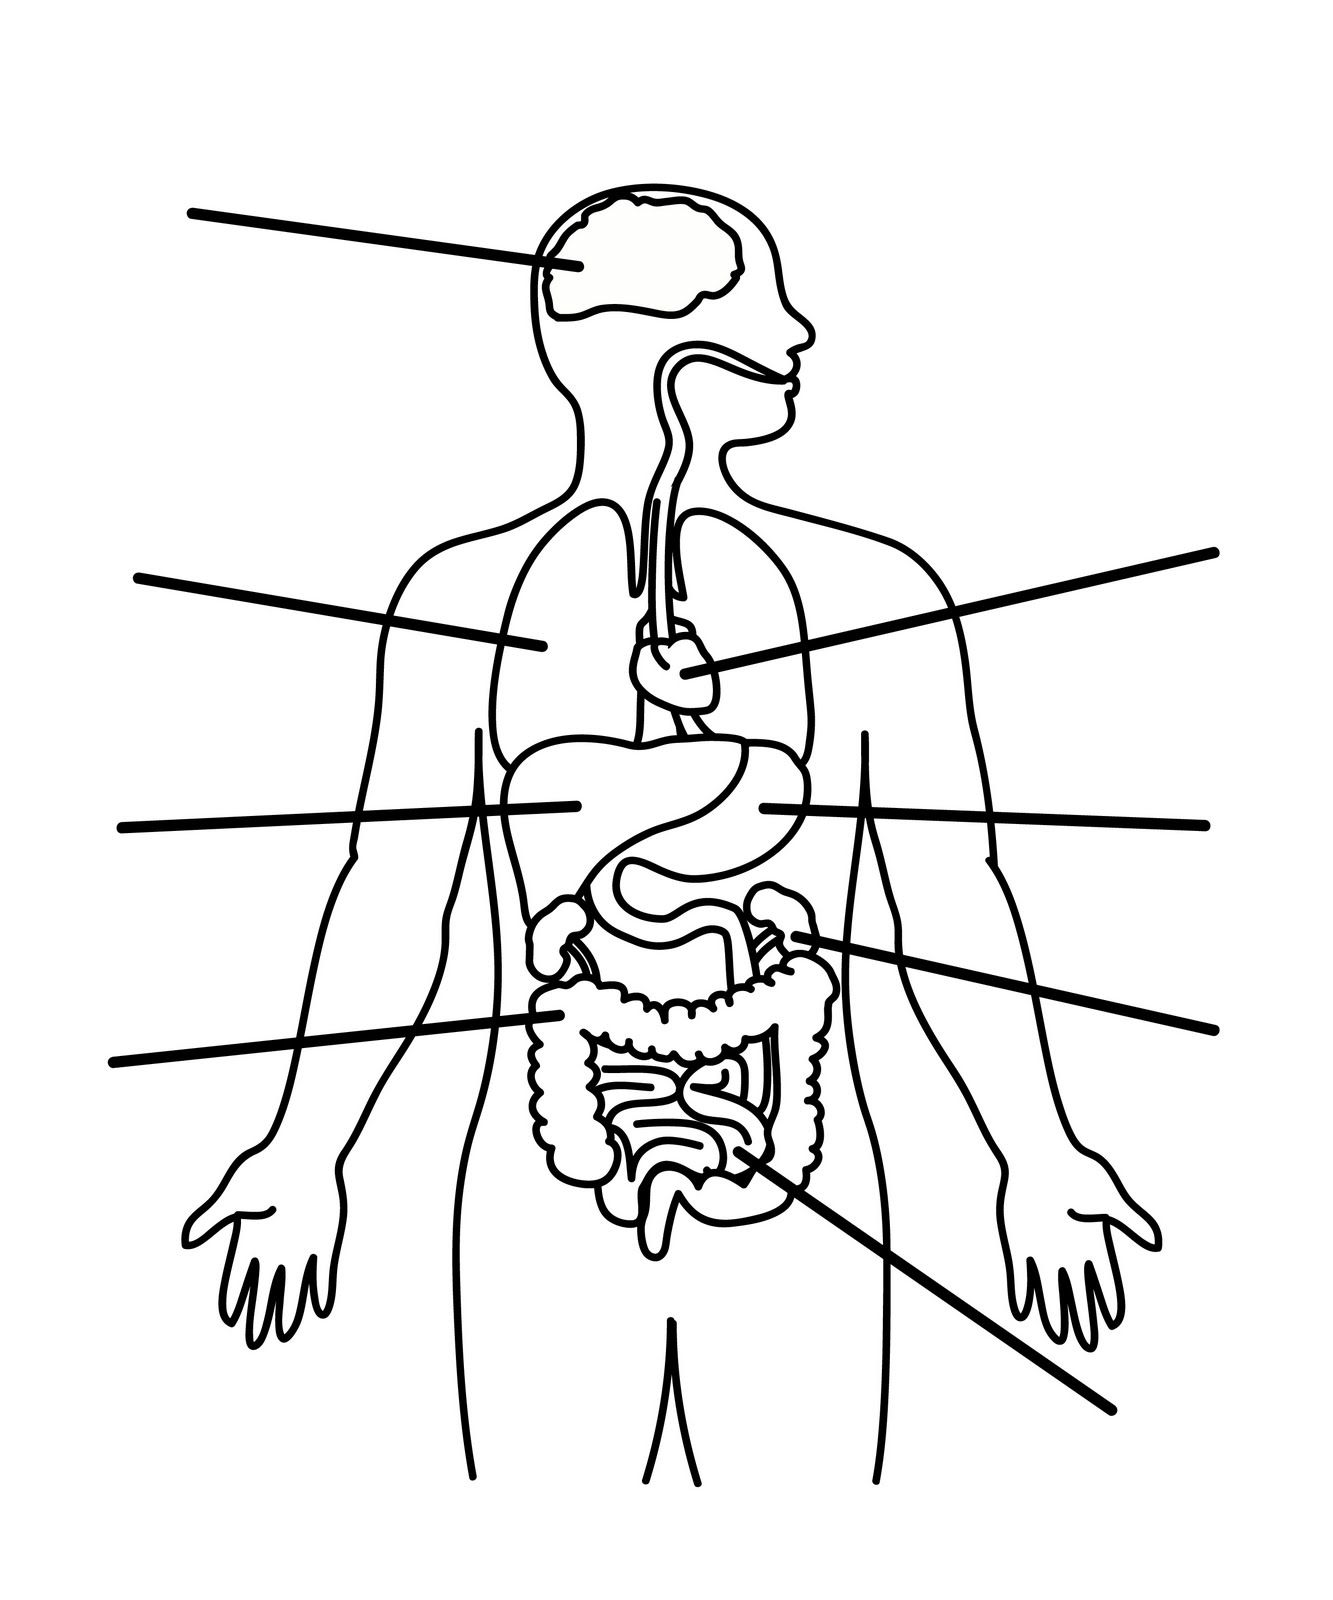 Human Body Outline Organs